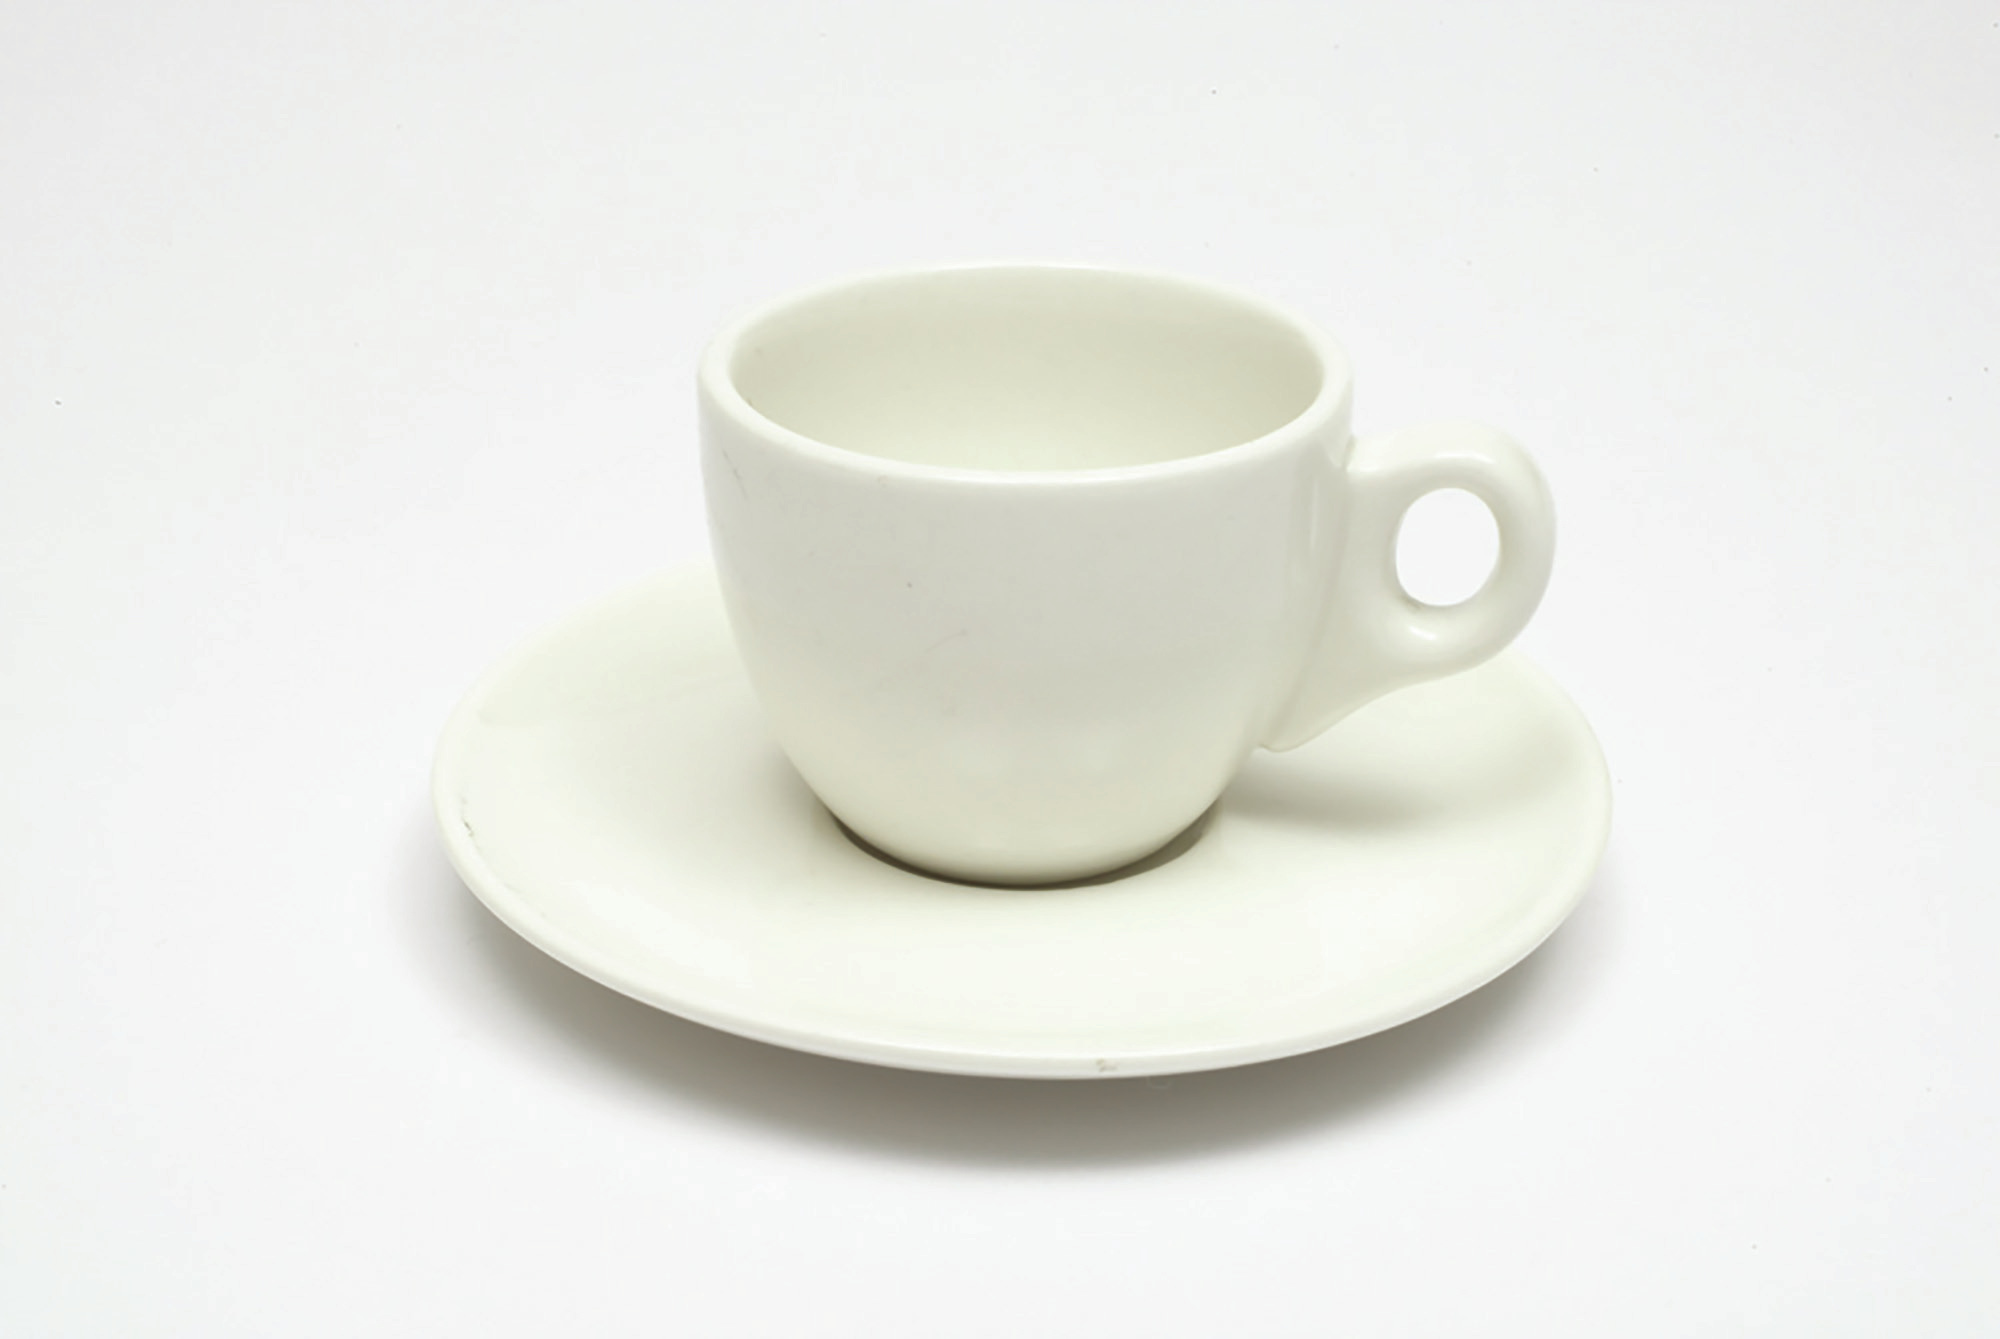 Maxwell & Williams White Basics 80Ml Demi Cup And Saucer